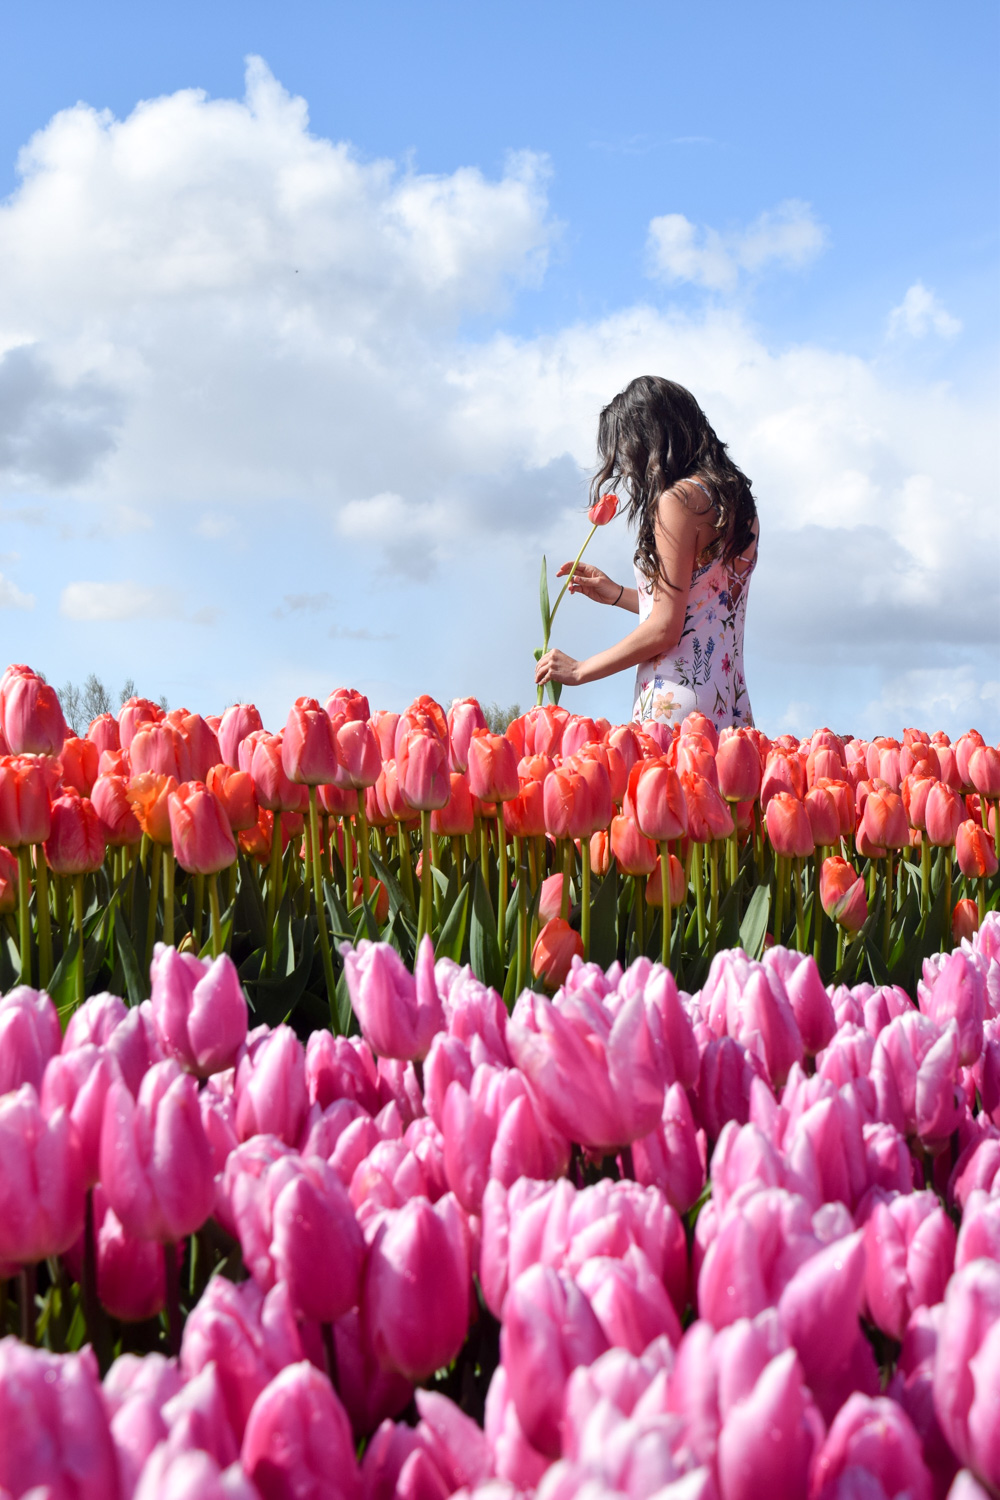 Where to see tulips in Amsterdam